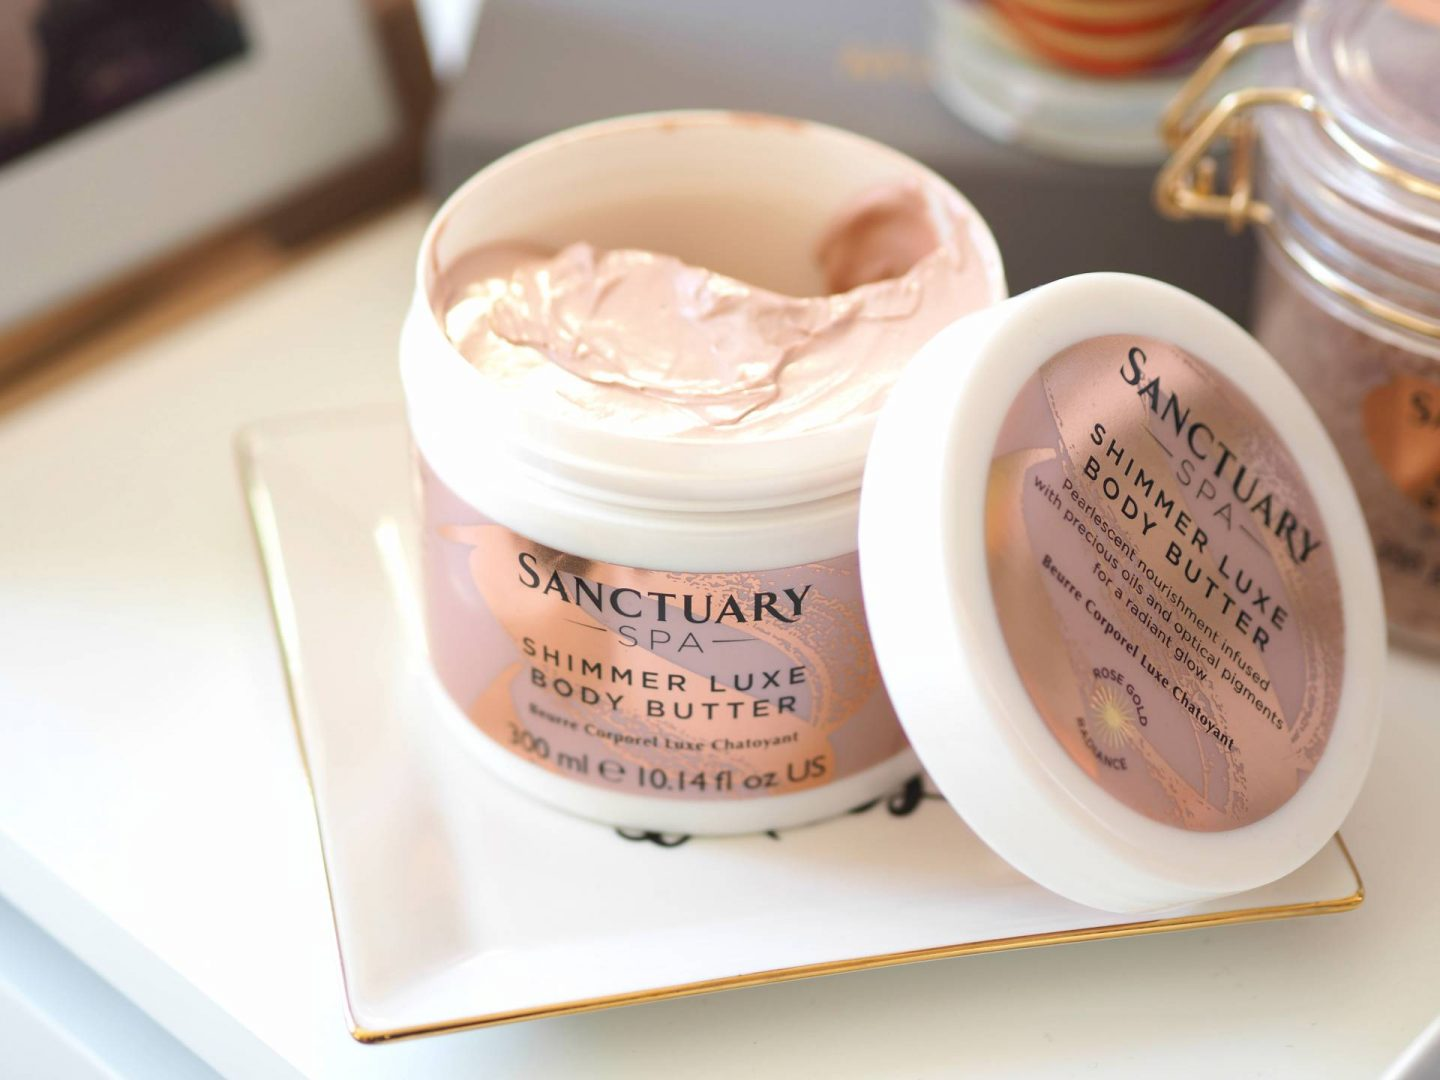 Getting a winter glow with Sanctuary Spa